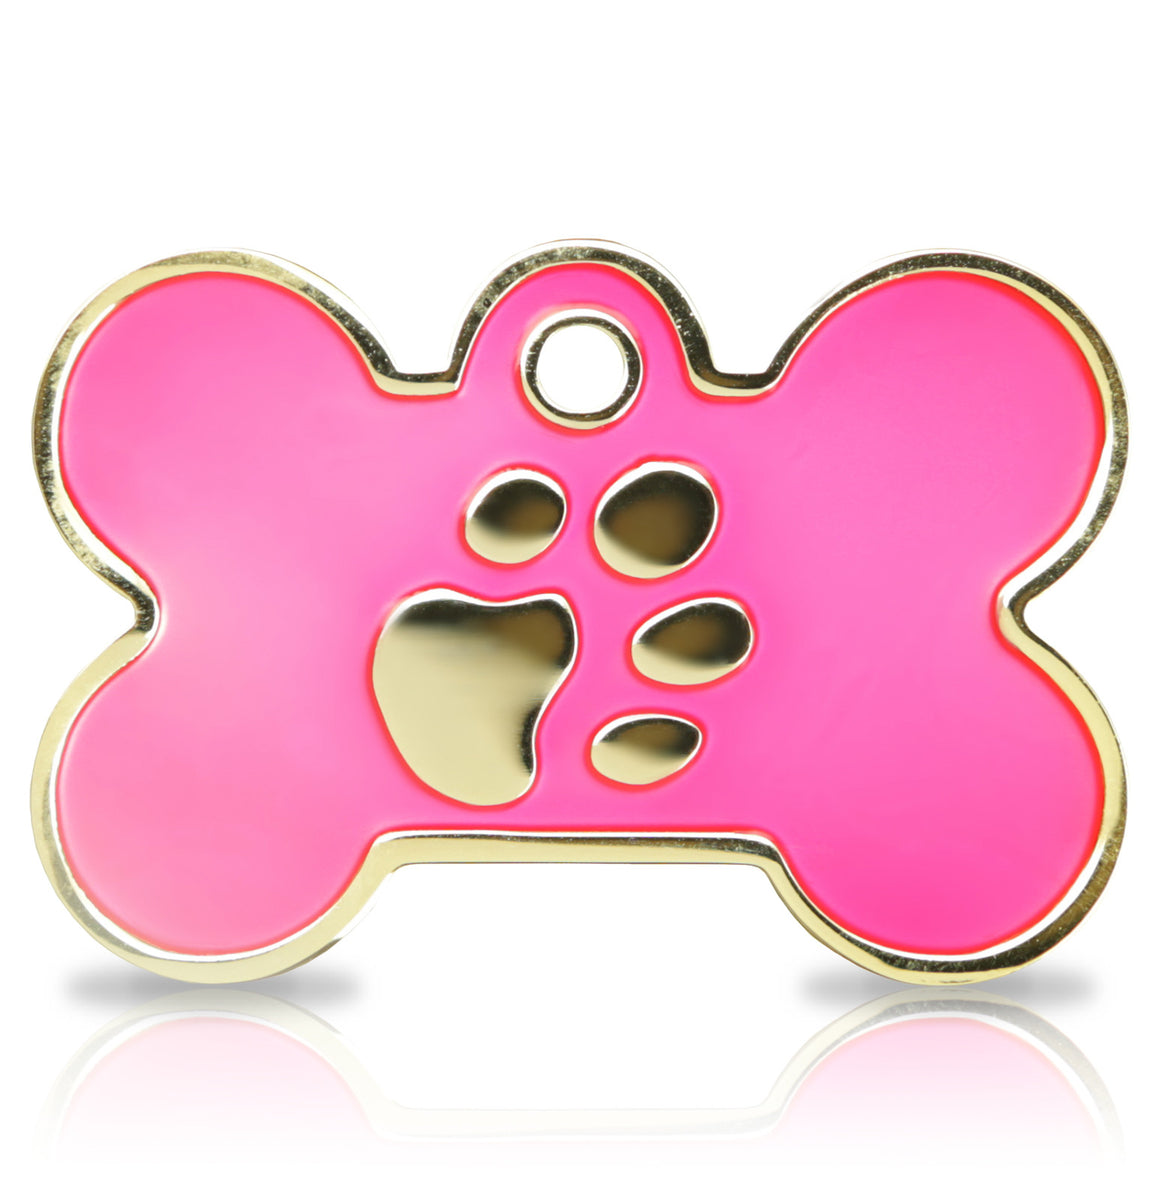 TaggIT Elegance Large Bone Pink & Gold Dog Tag iMarc Tag